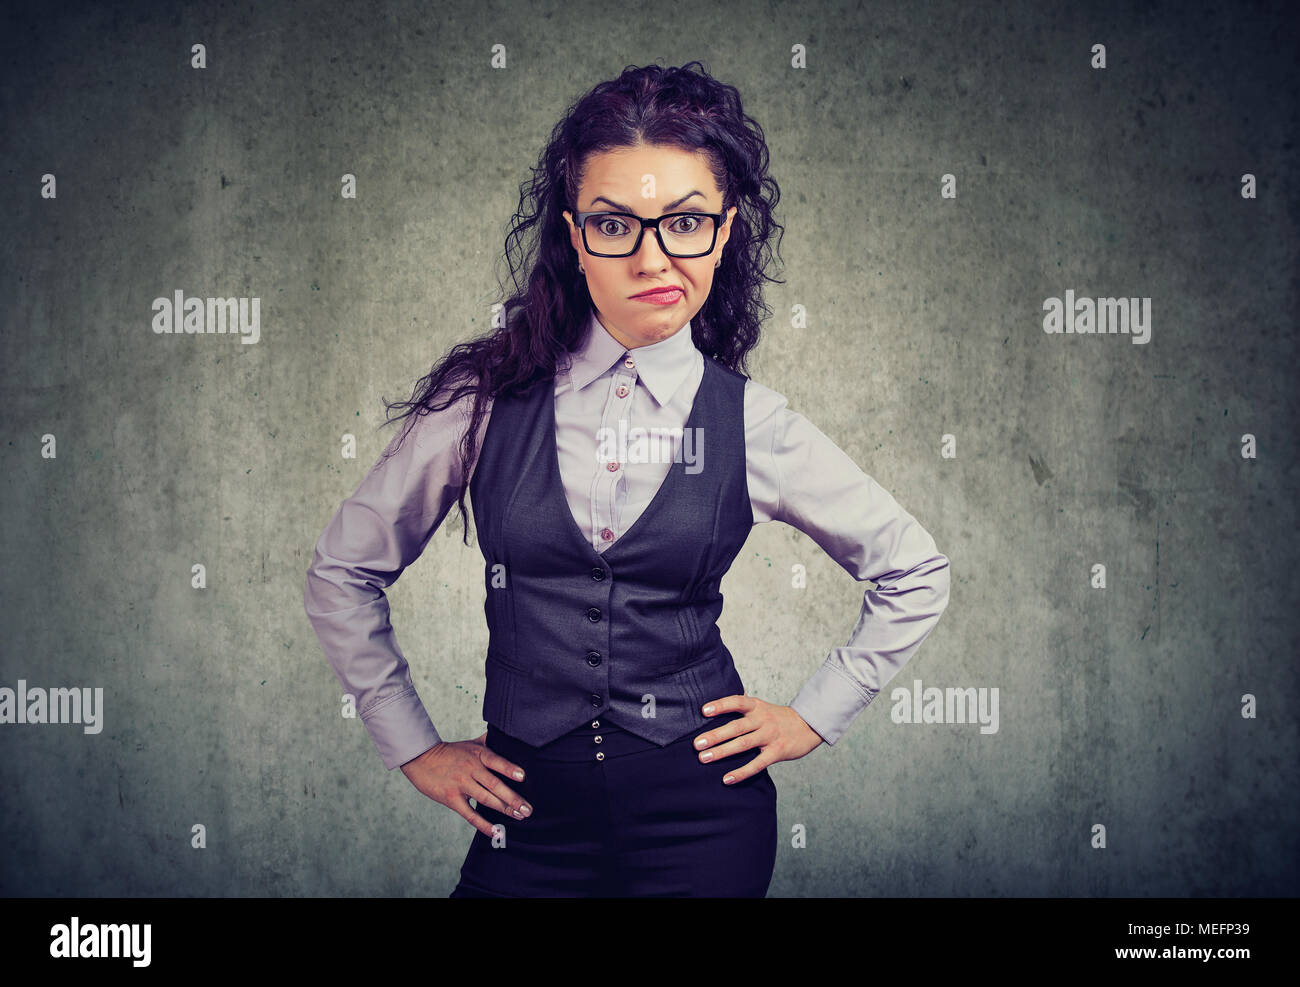 Woman in elegant suit and glasses looking at camera in disagreement holding hands on hips. - Stock Image